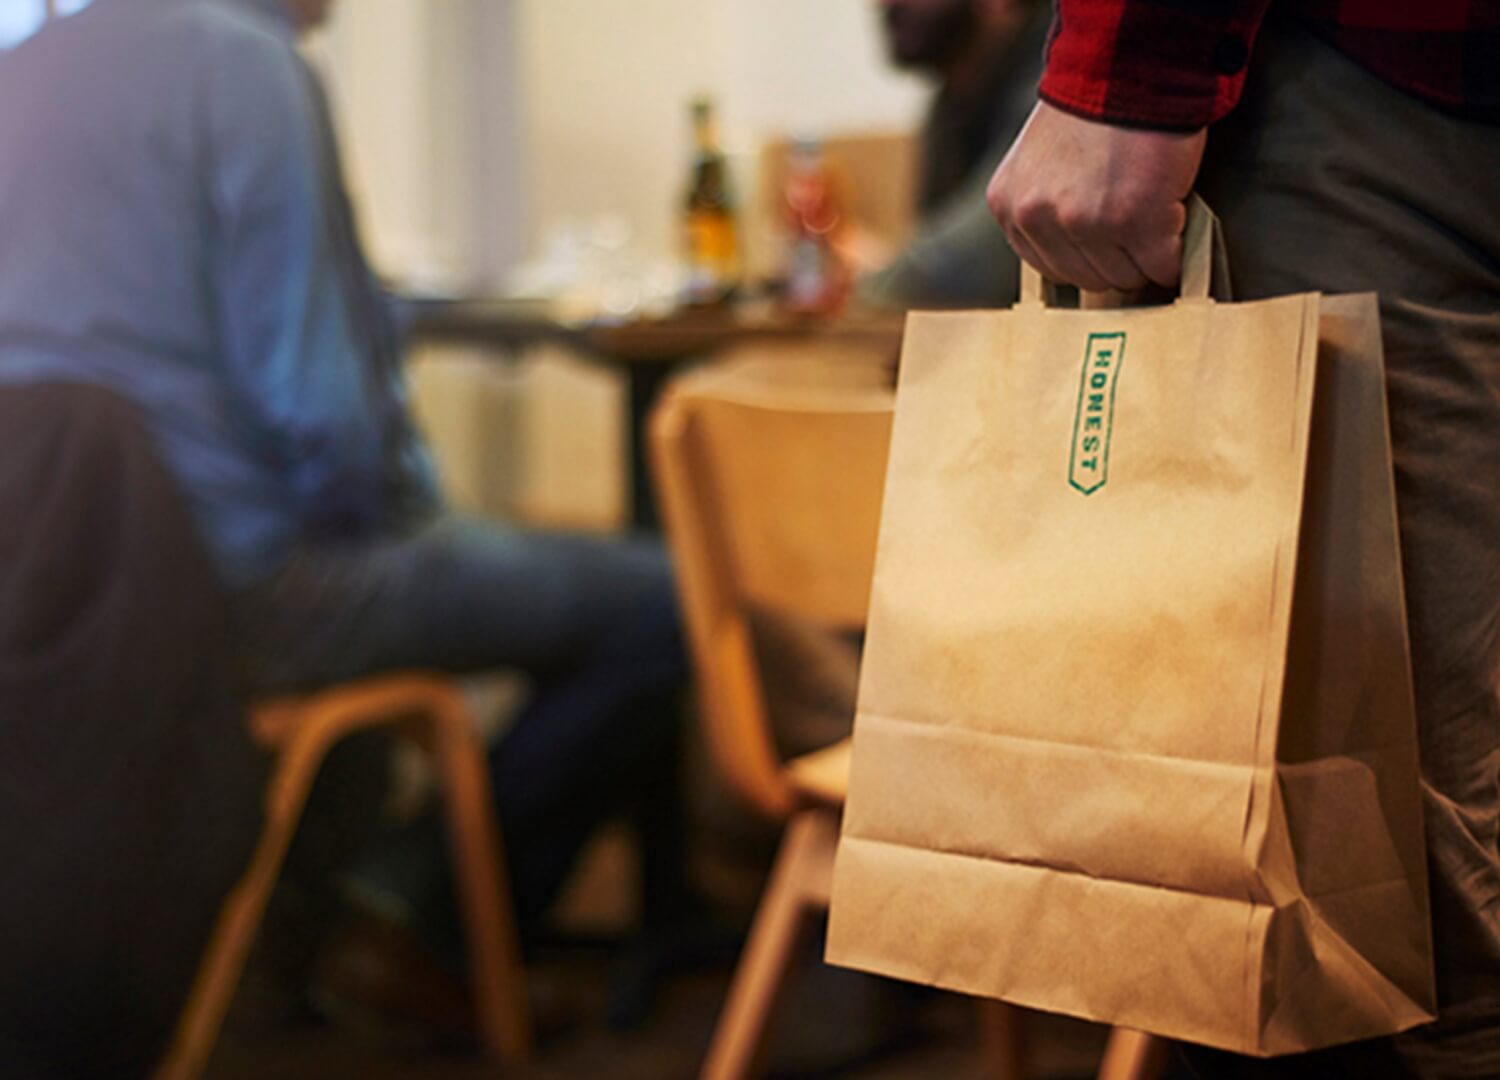 Honest Burgers take out bag